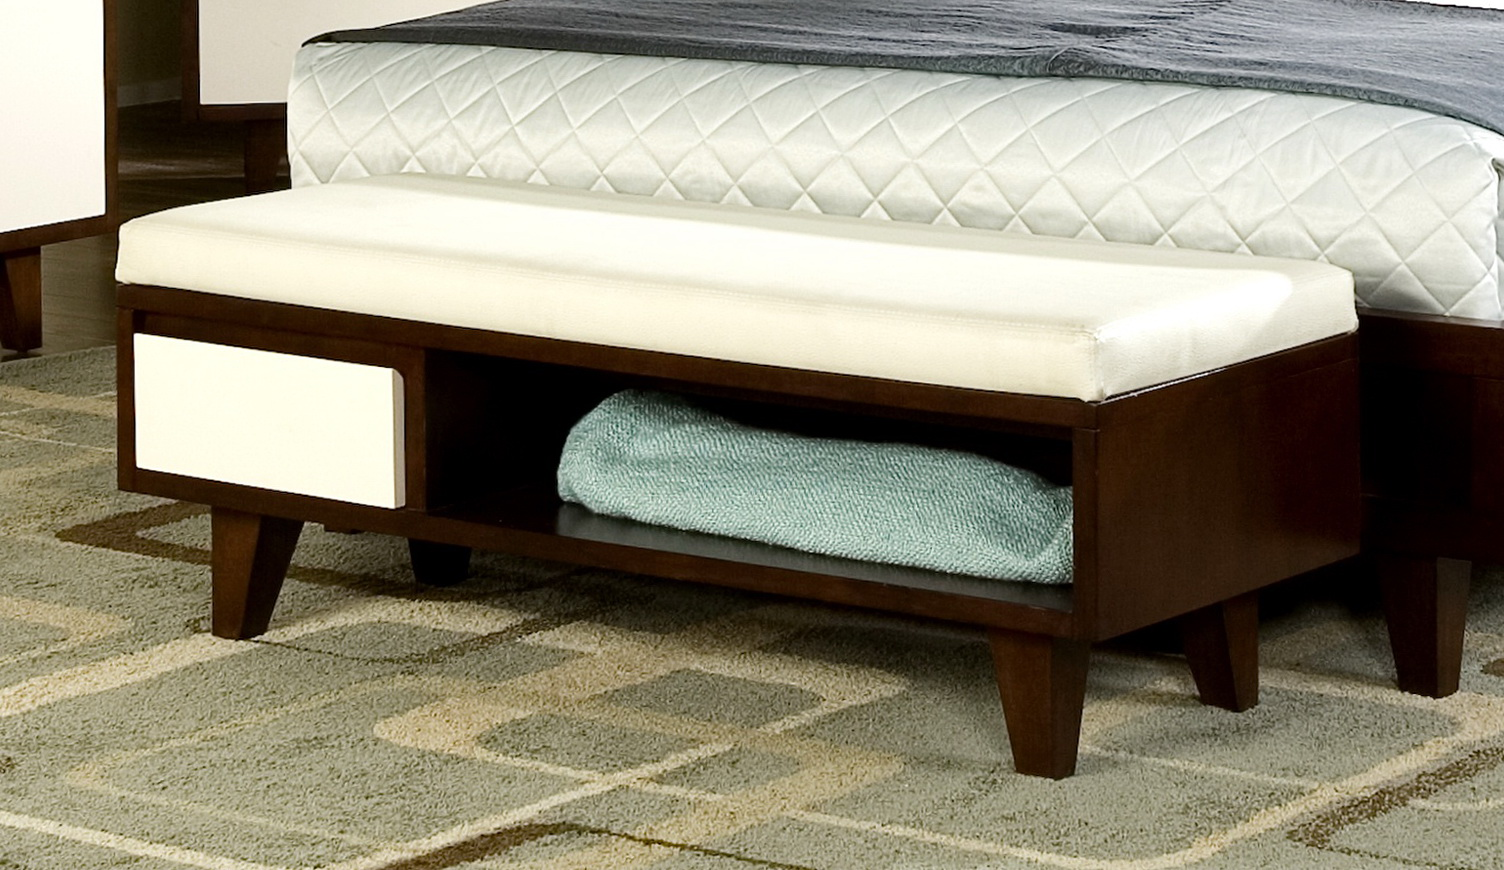 Bedroom Storage Bench With Drawers